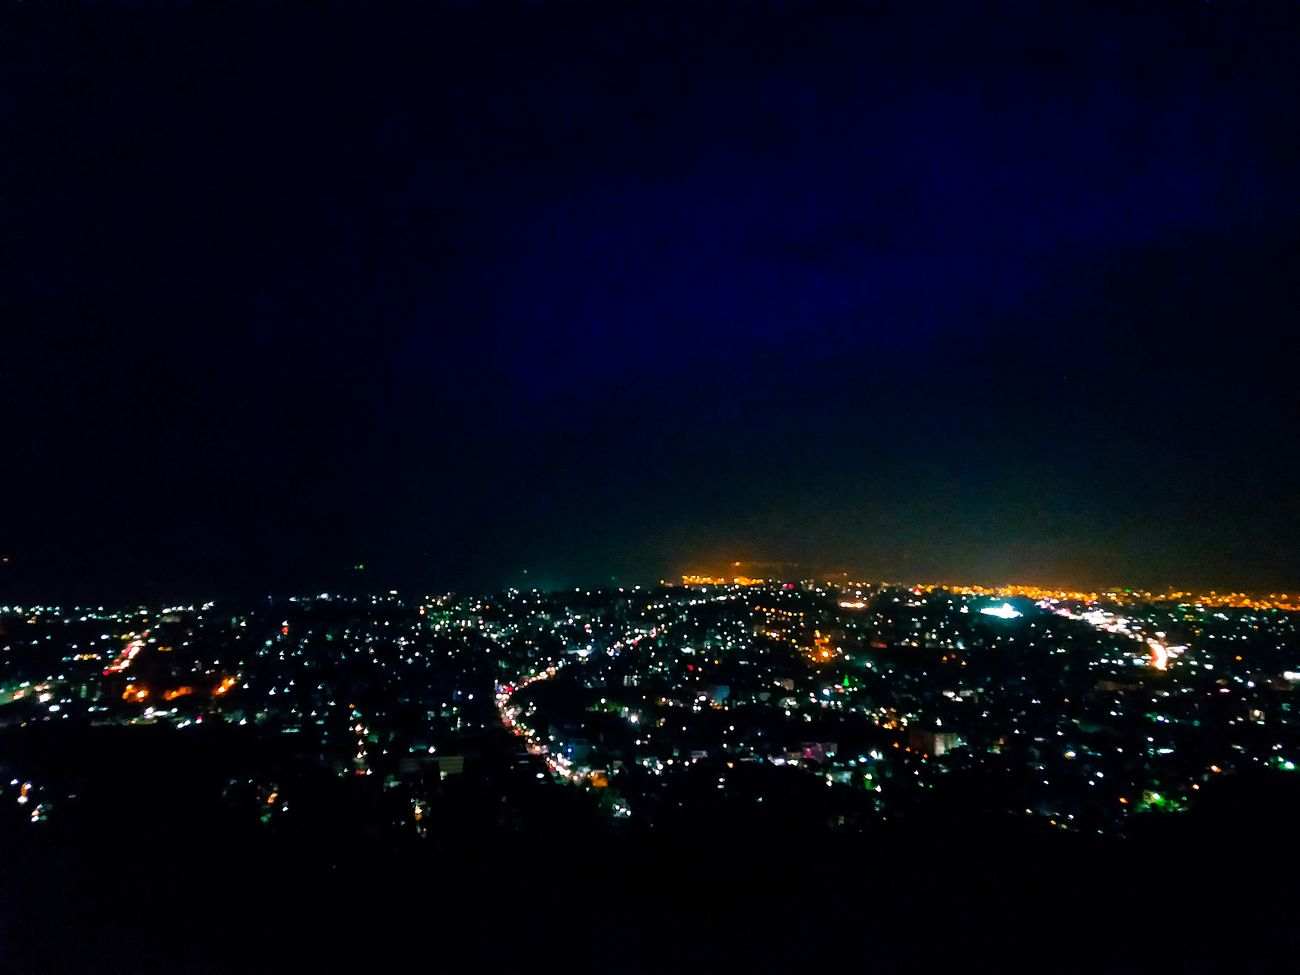 Night view of visakhapatnam.. Don't complain because I capture all my pictures from my phone.. Enjoy Night Illuminated City Cityscape Aerial View Atmosphere No People Scenics Nightlife City Life High Angle View Visakhapatnam My Favorite Place